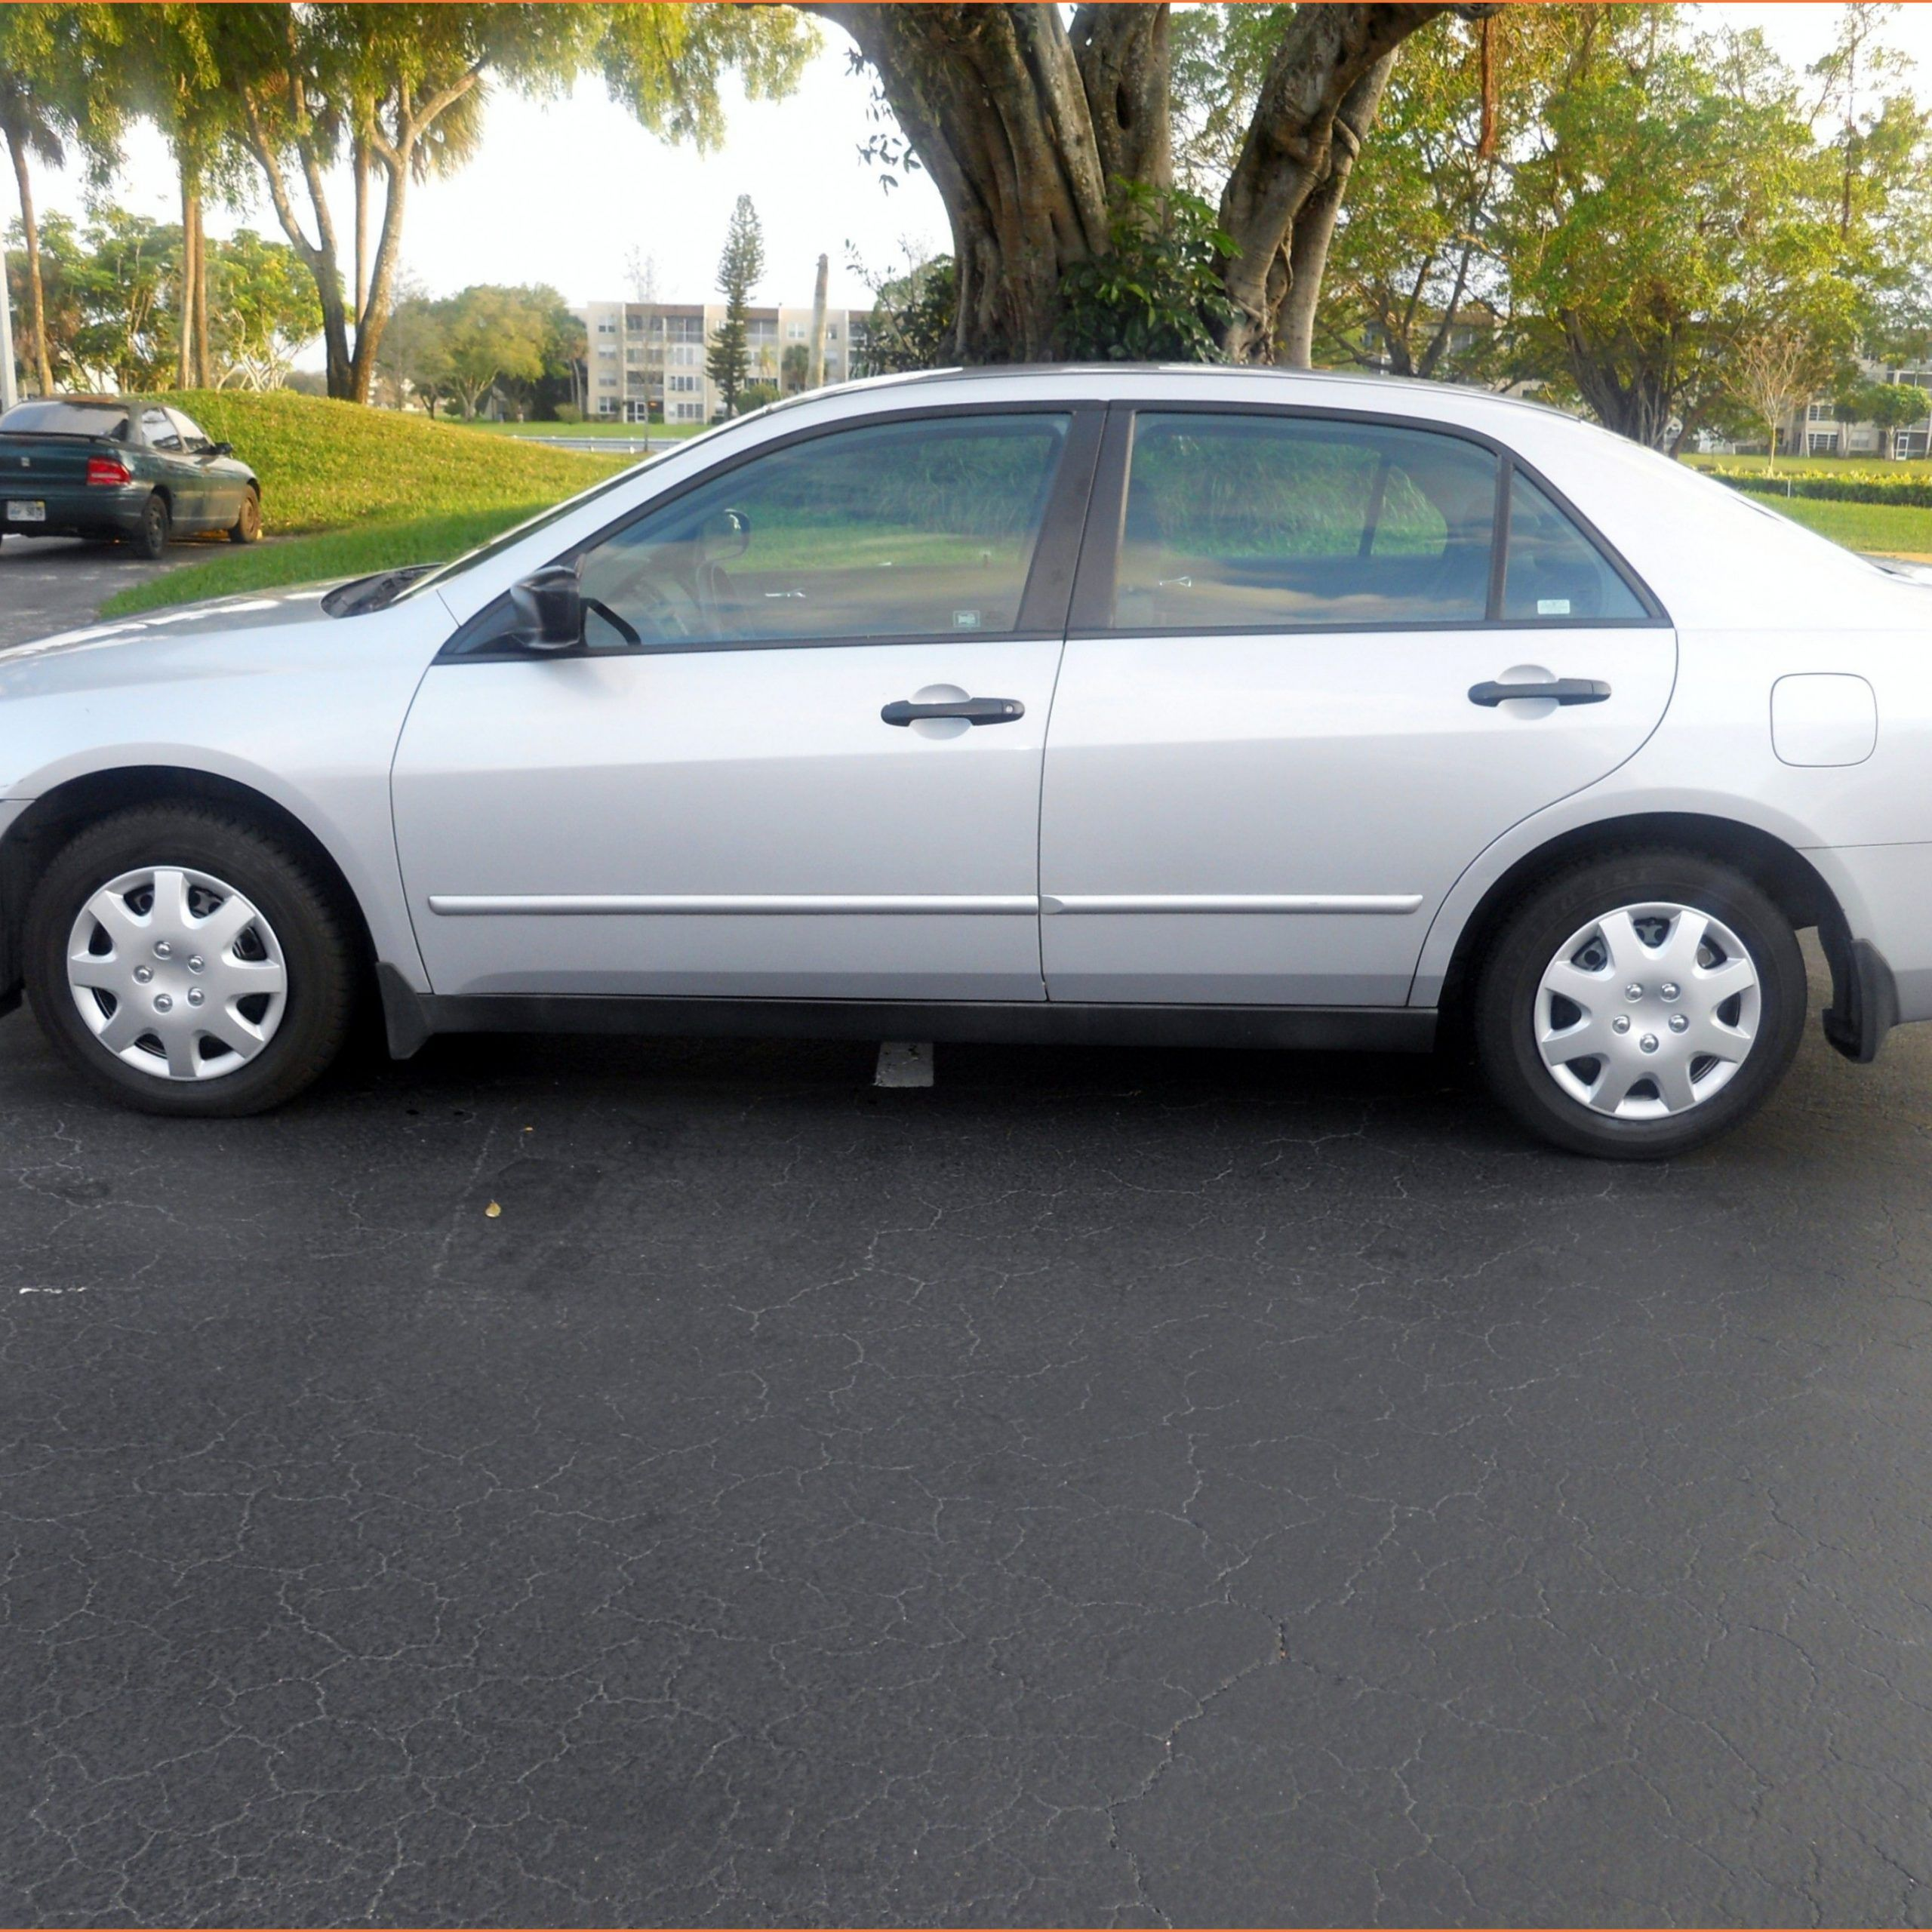 Ten Doubts You Should Clarify About Craigslist Used Cars